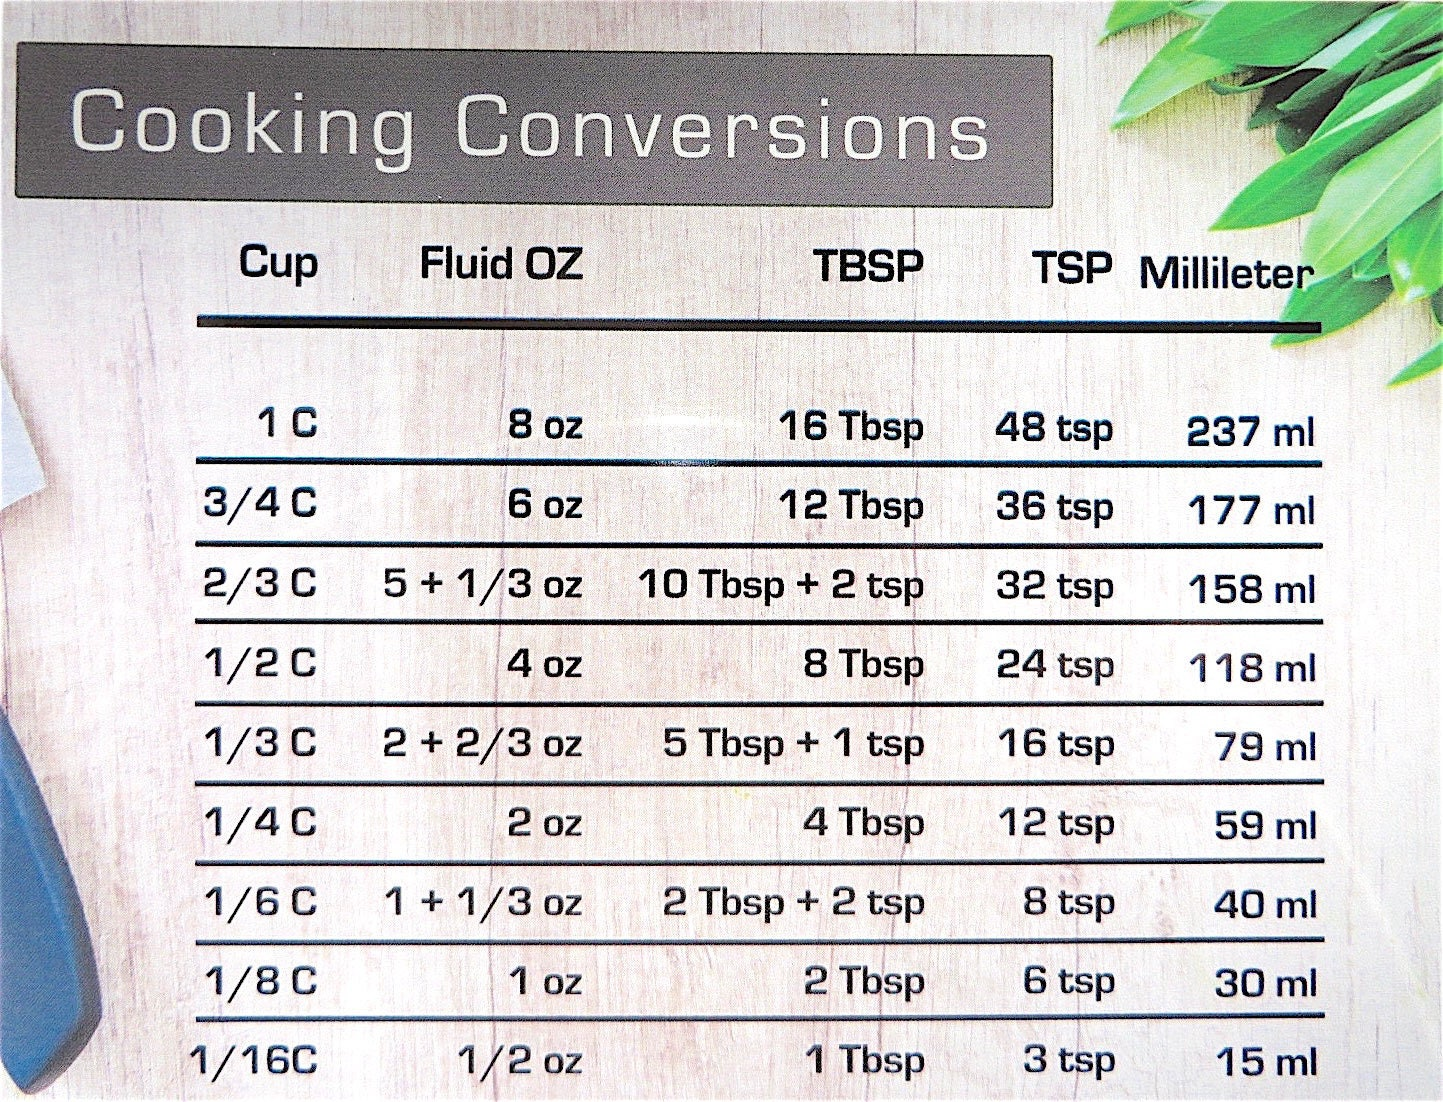 Cooking conversions magnet conversion chart decal kitchen zoom nvjuhfo Images